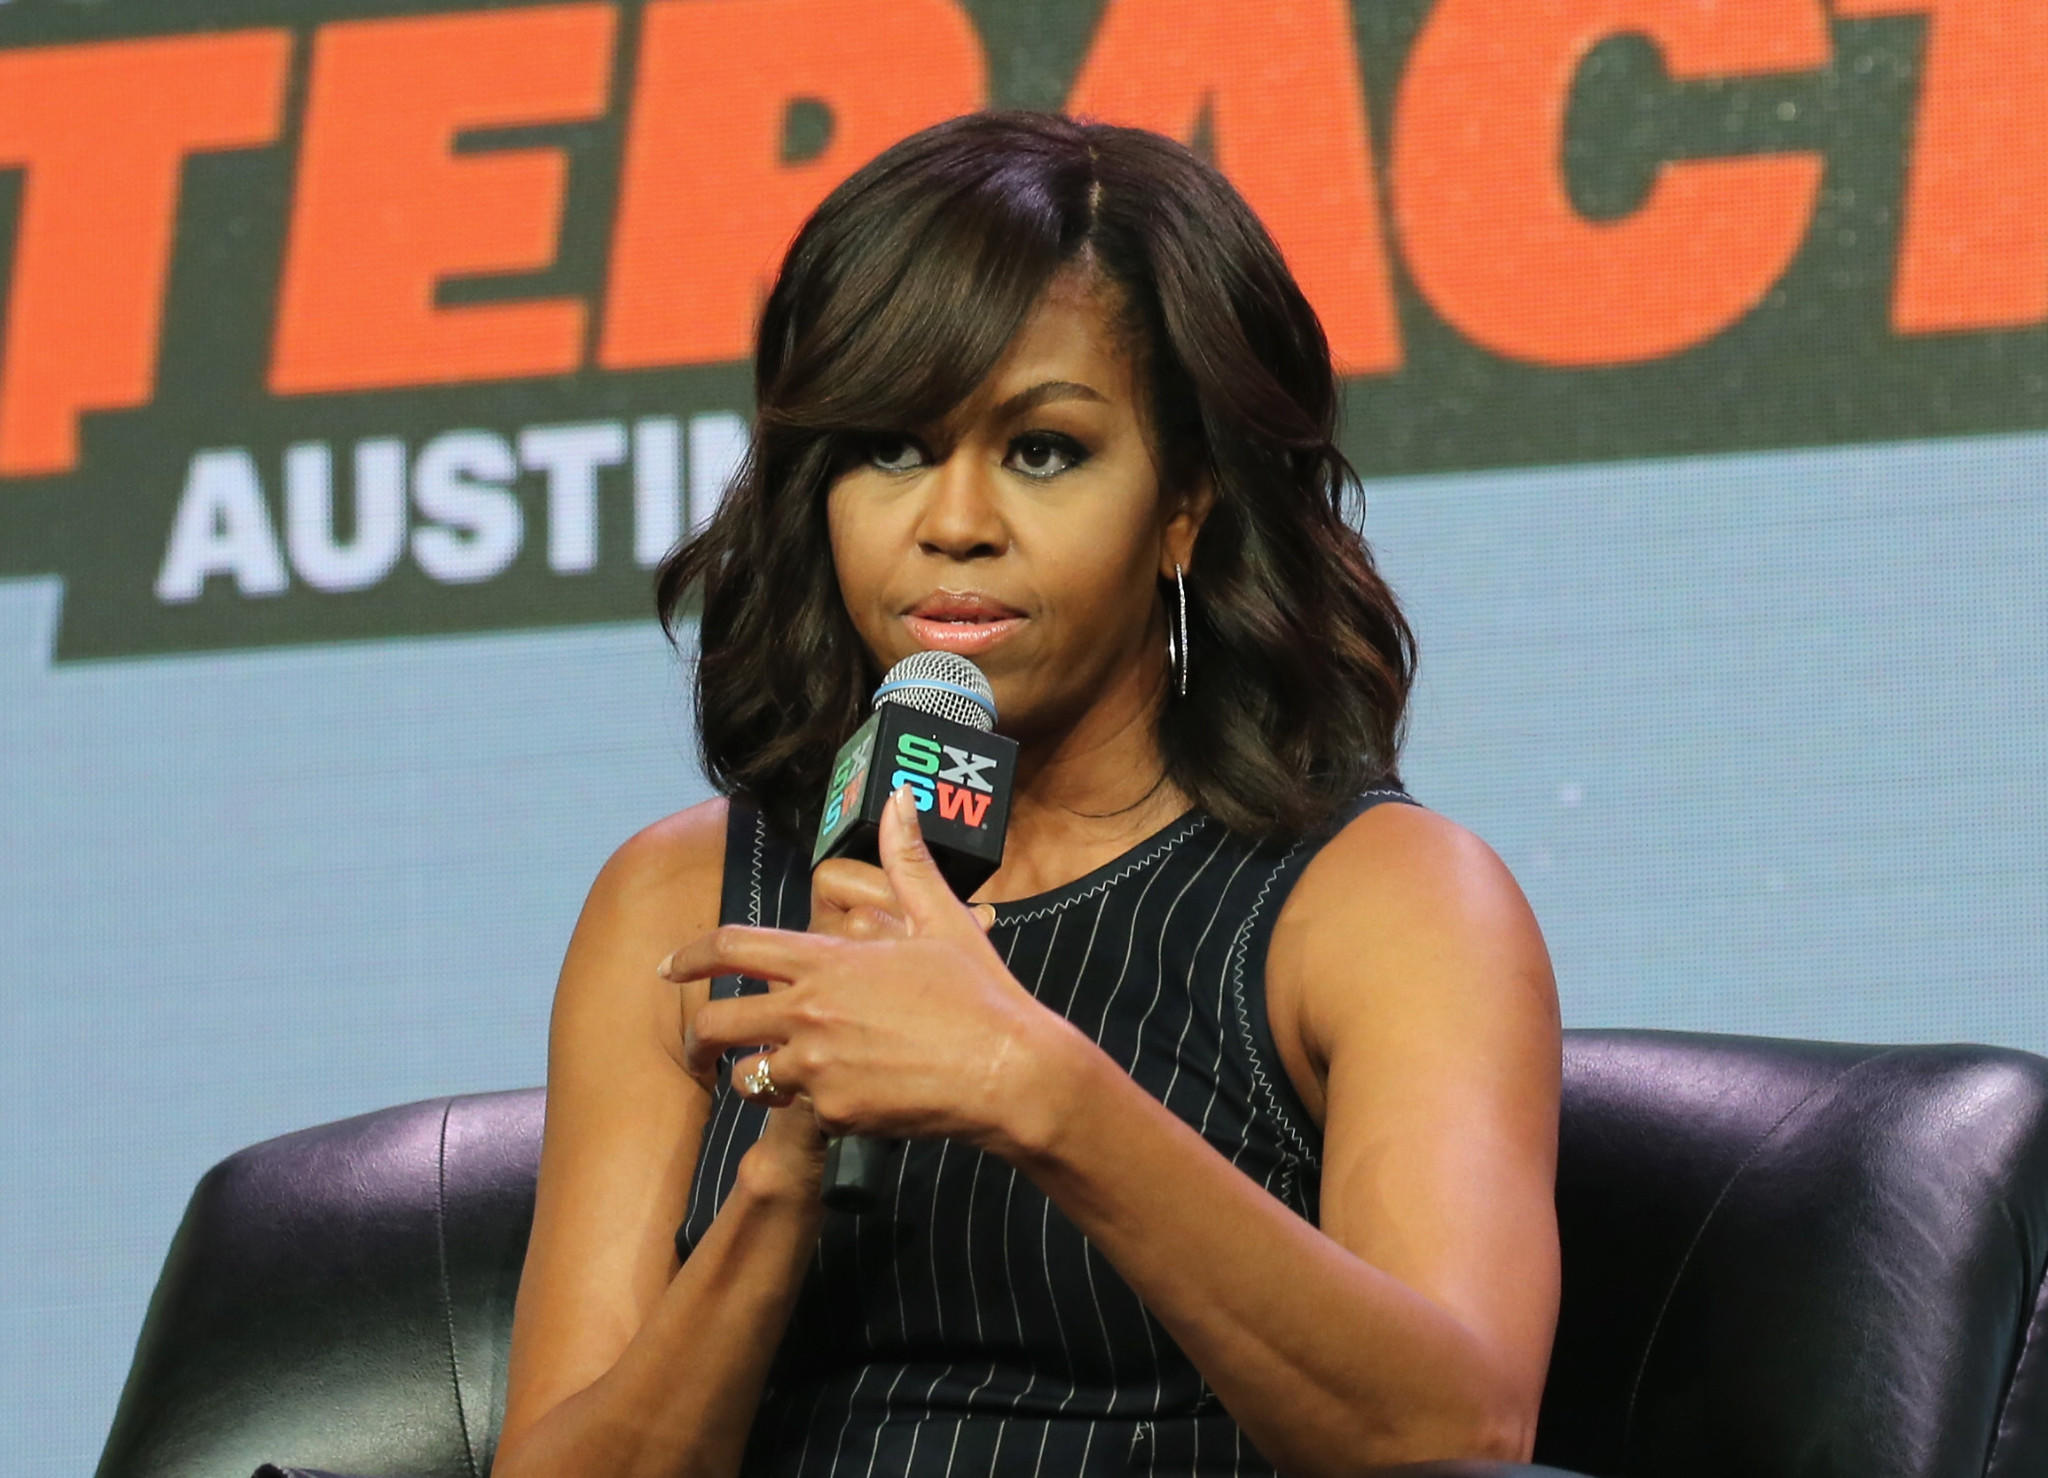 First Lady Michelle Obama speaks at the South by Southwest festival on March 16. (Neilson Barnard / Getty Images)